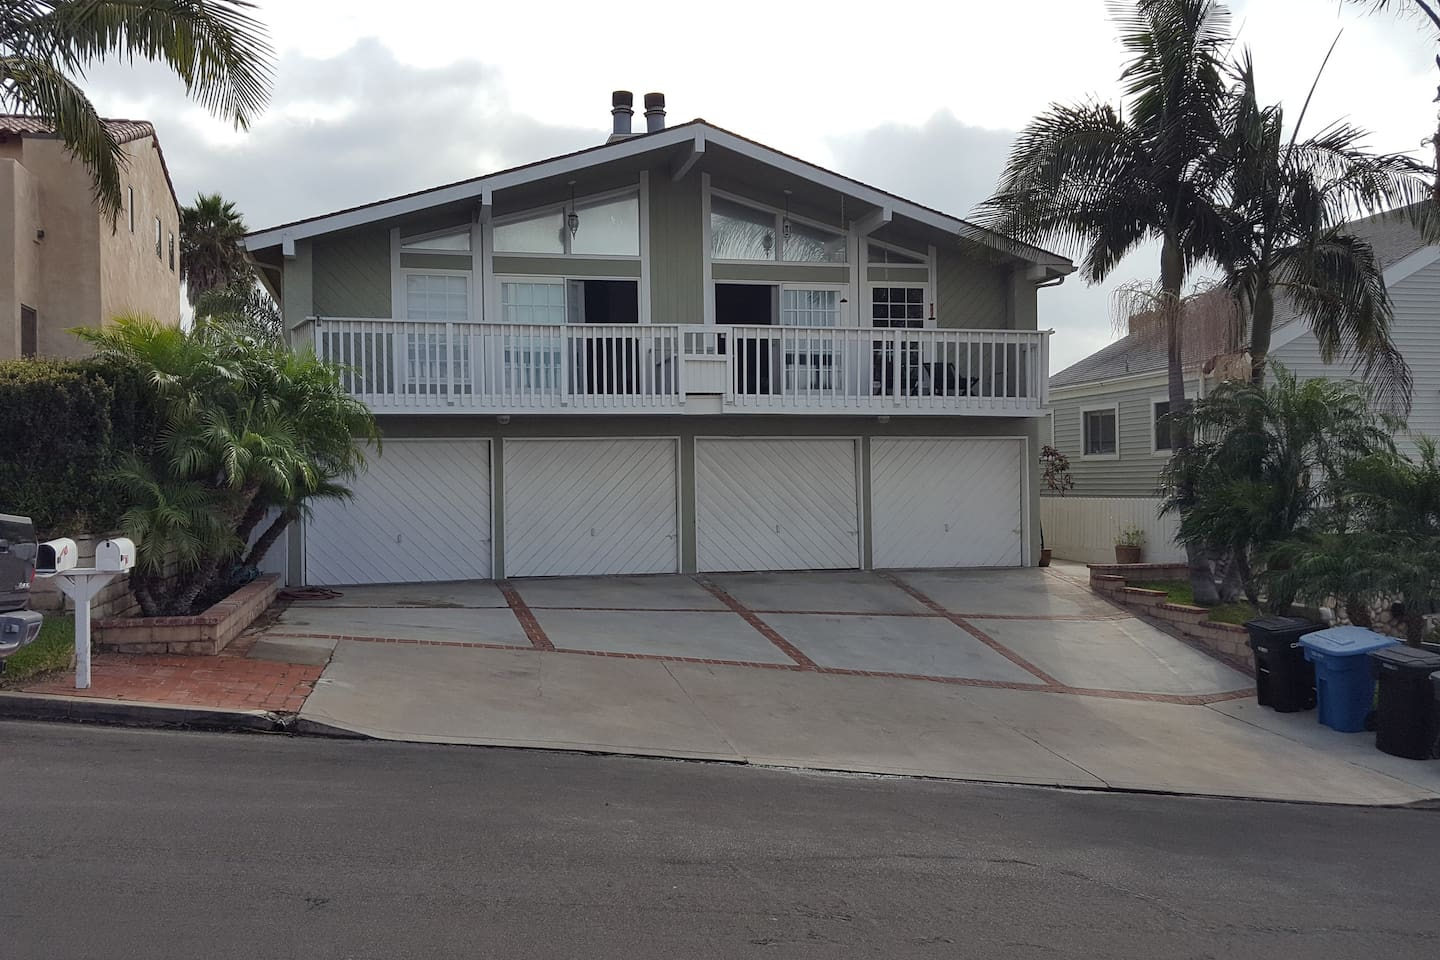 Ocean View Townhome 1700 sq ft